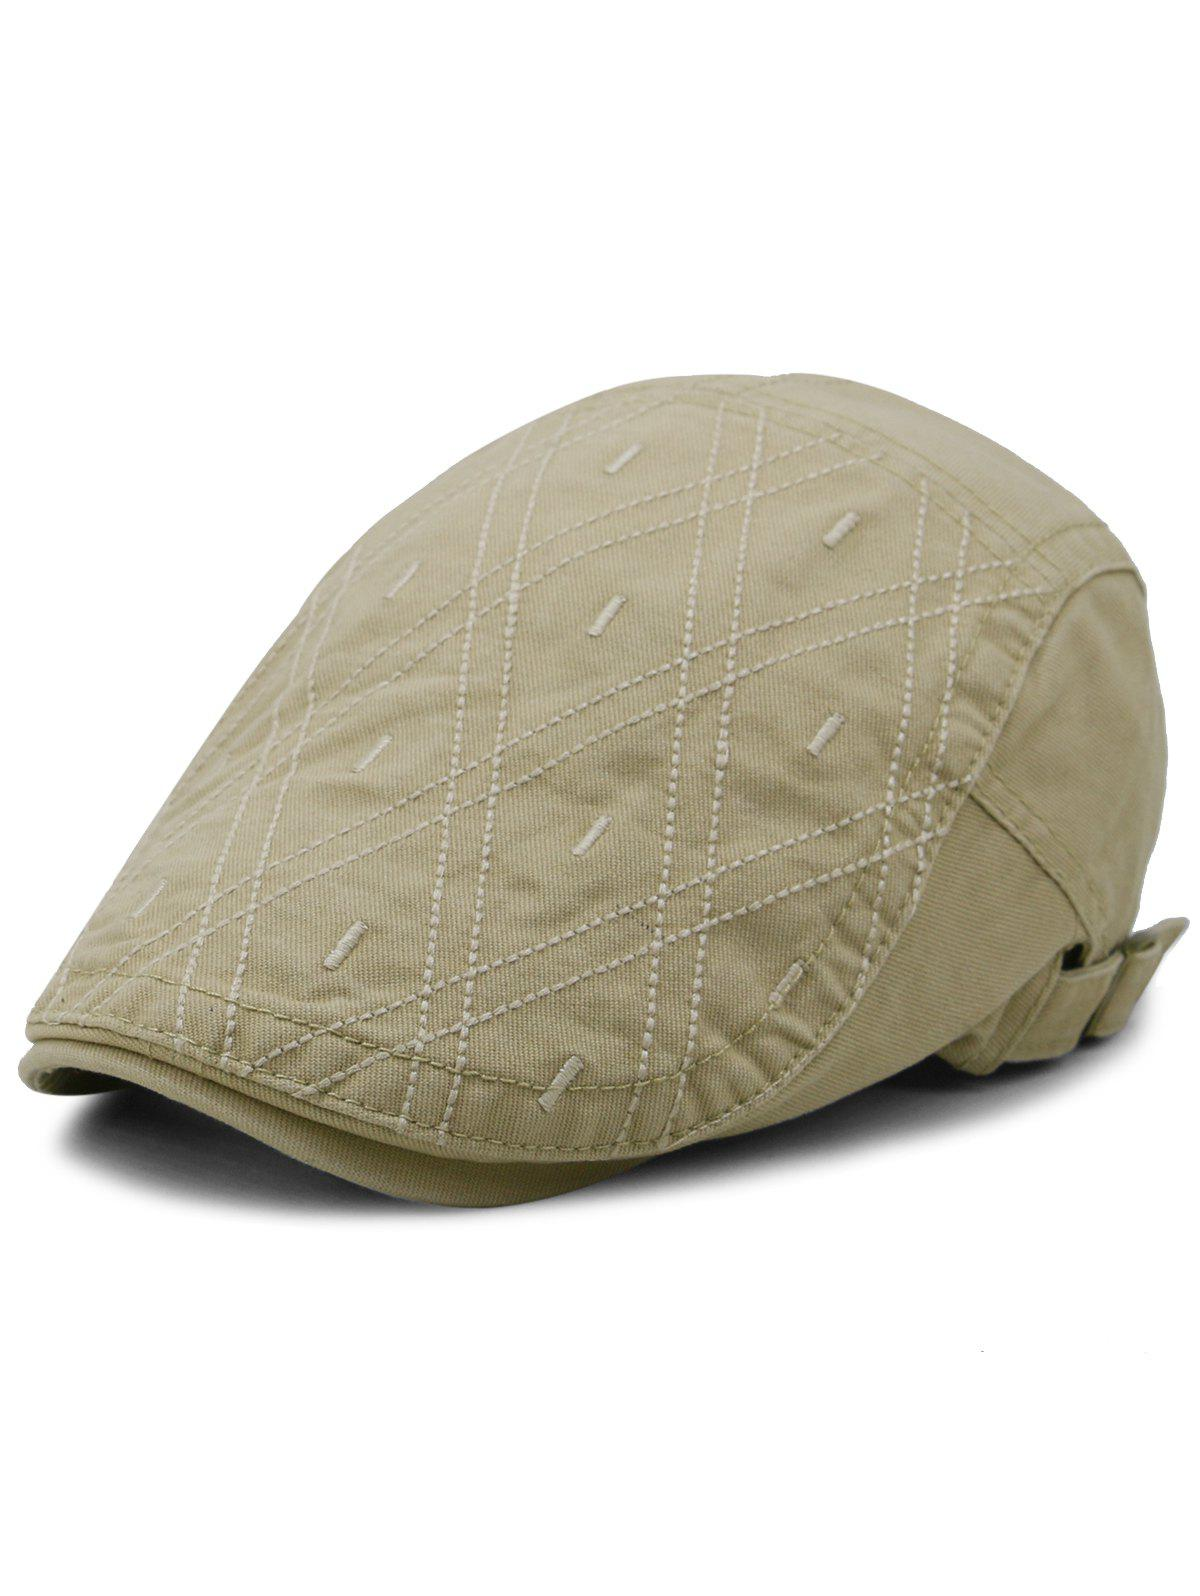 Outdoor Rhombus Embroidery Cabbie Hat patchwork pattern embroidery outdoor sunscreen cabbie hat for men